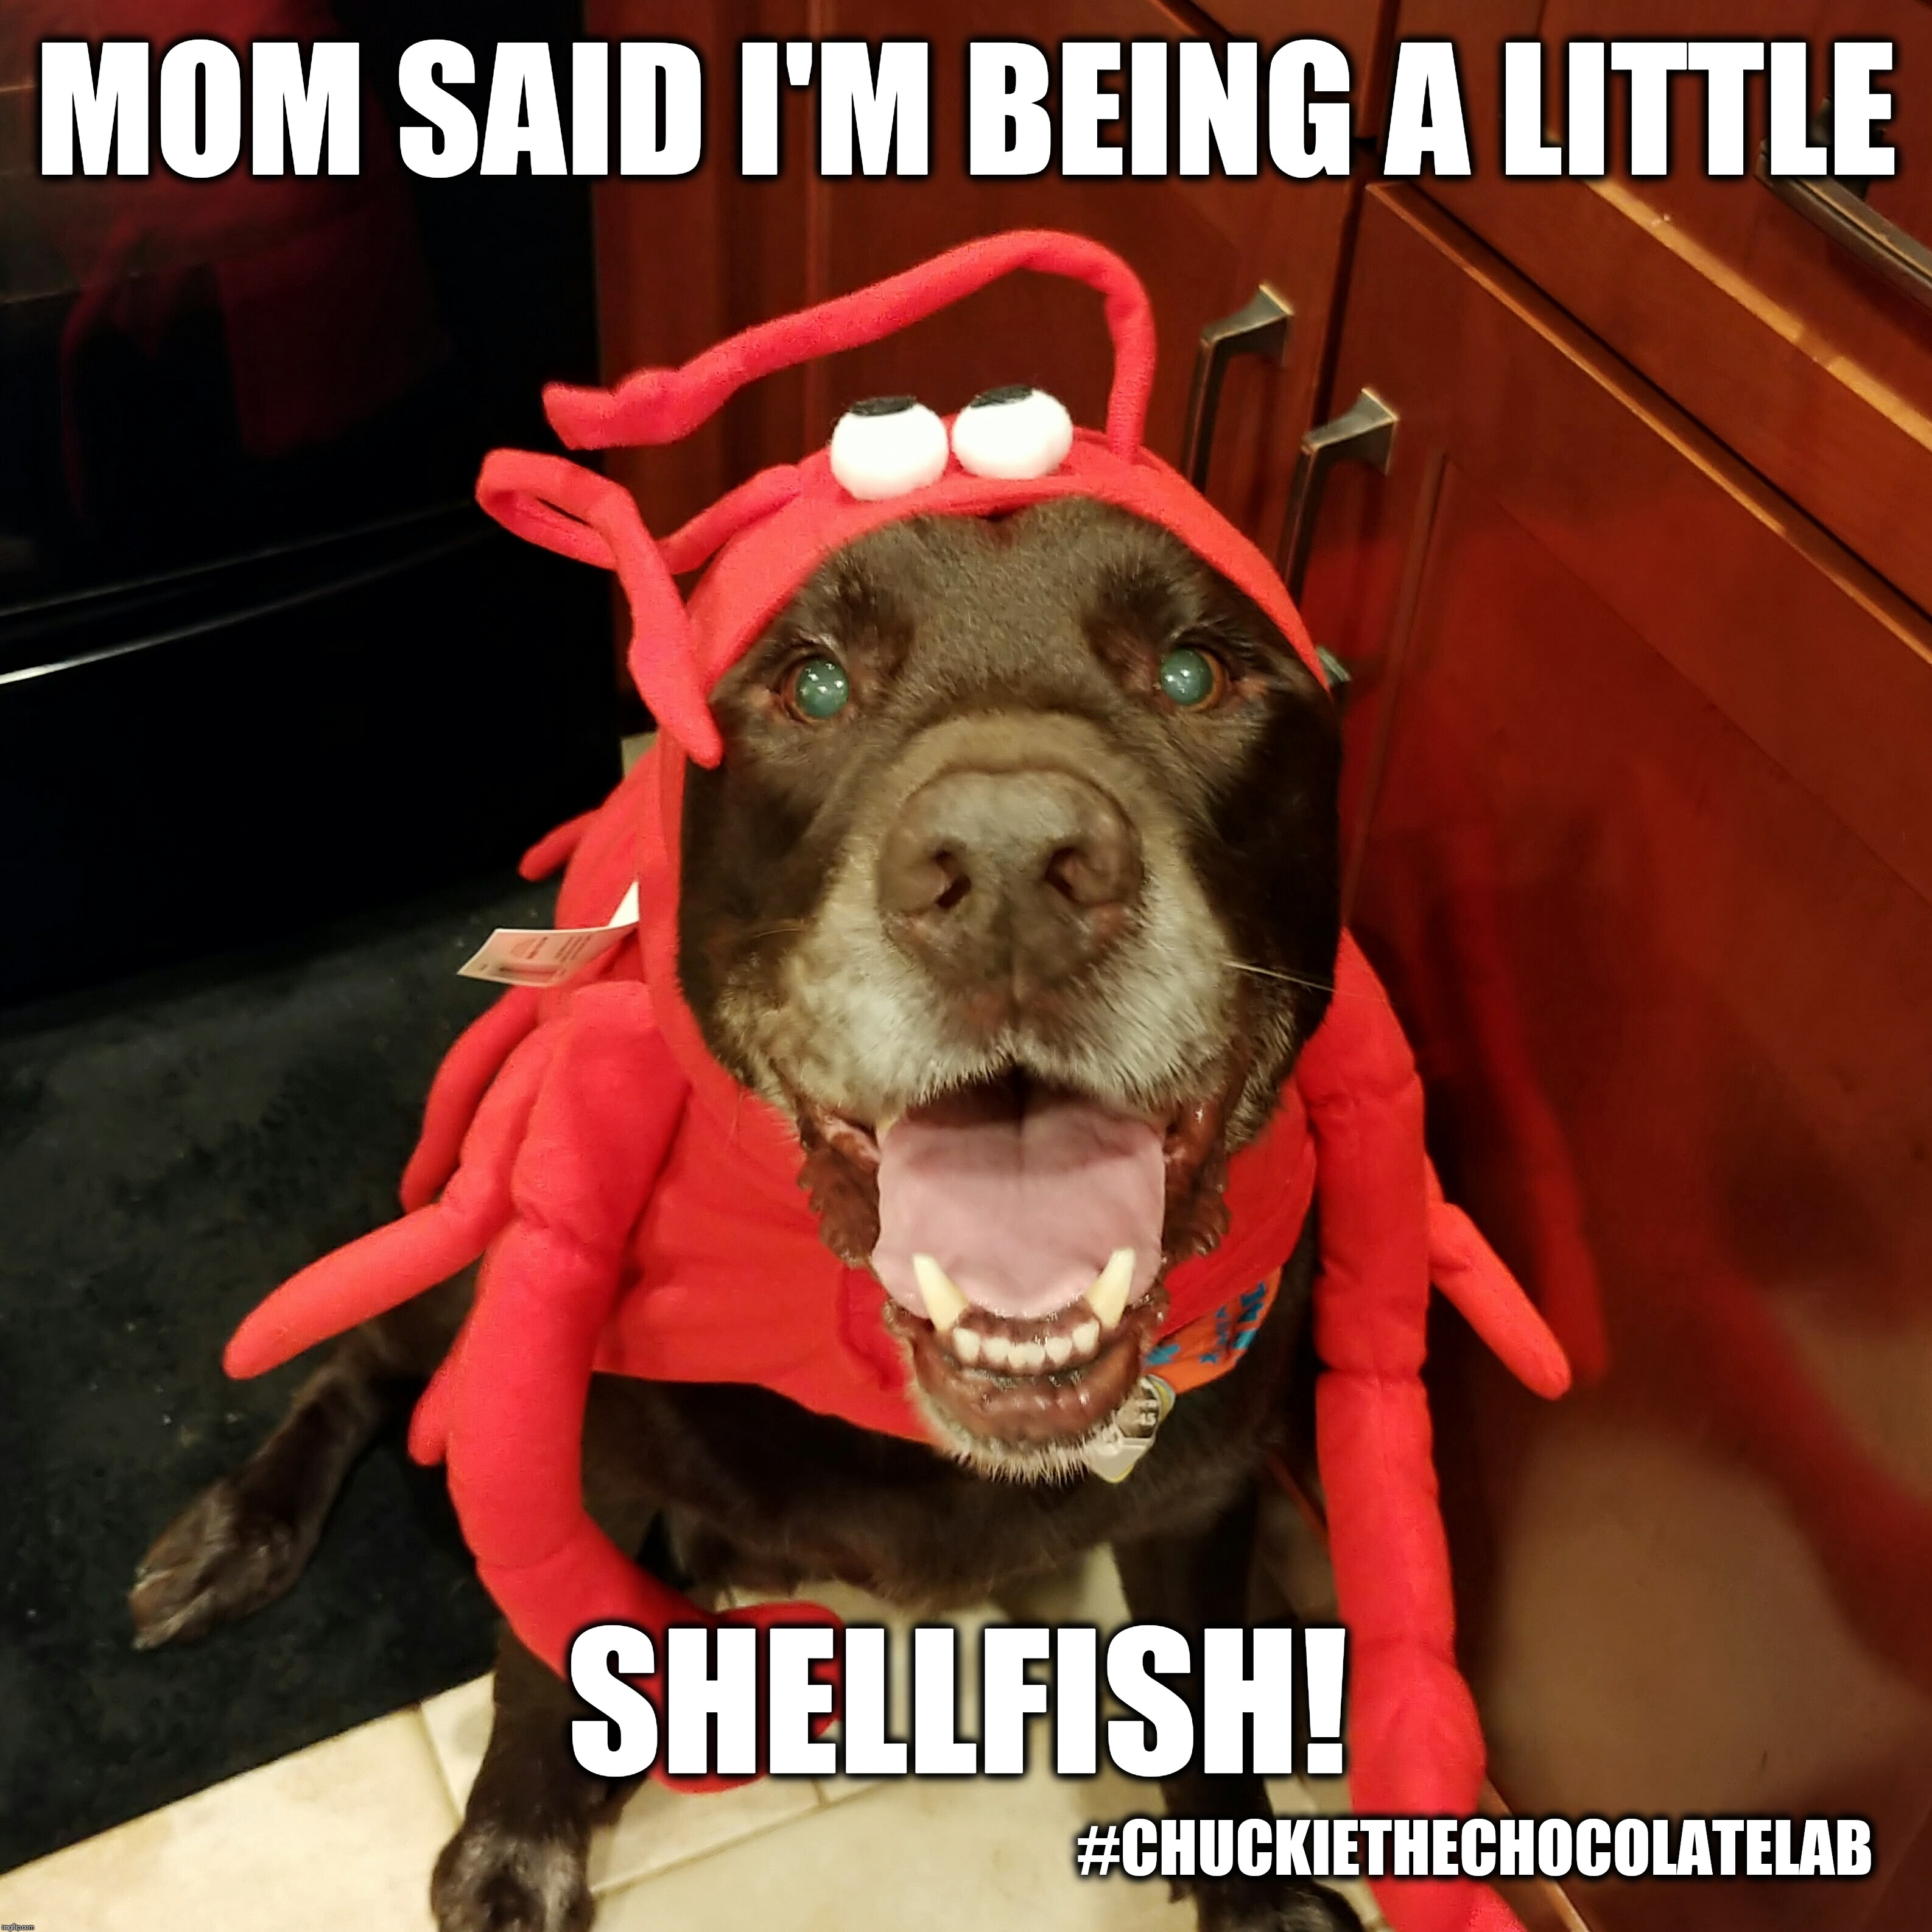 I'm being a little shellfish!  | MOM SAID I'M BEING A LITTLE SHELLFISH! #CHUCKIETHECHOCOLATELAB | image tagged in chuckie the chocolate lab,dogs,funny,memes,halloween,lobster | made w/ Imgflip meme maker